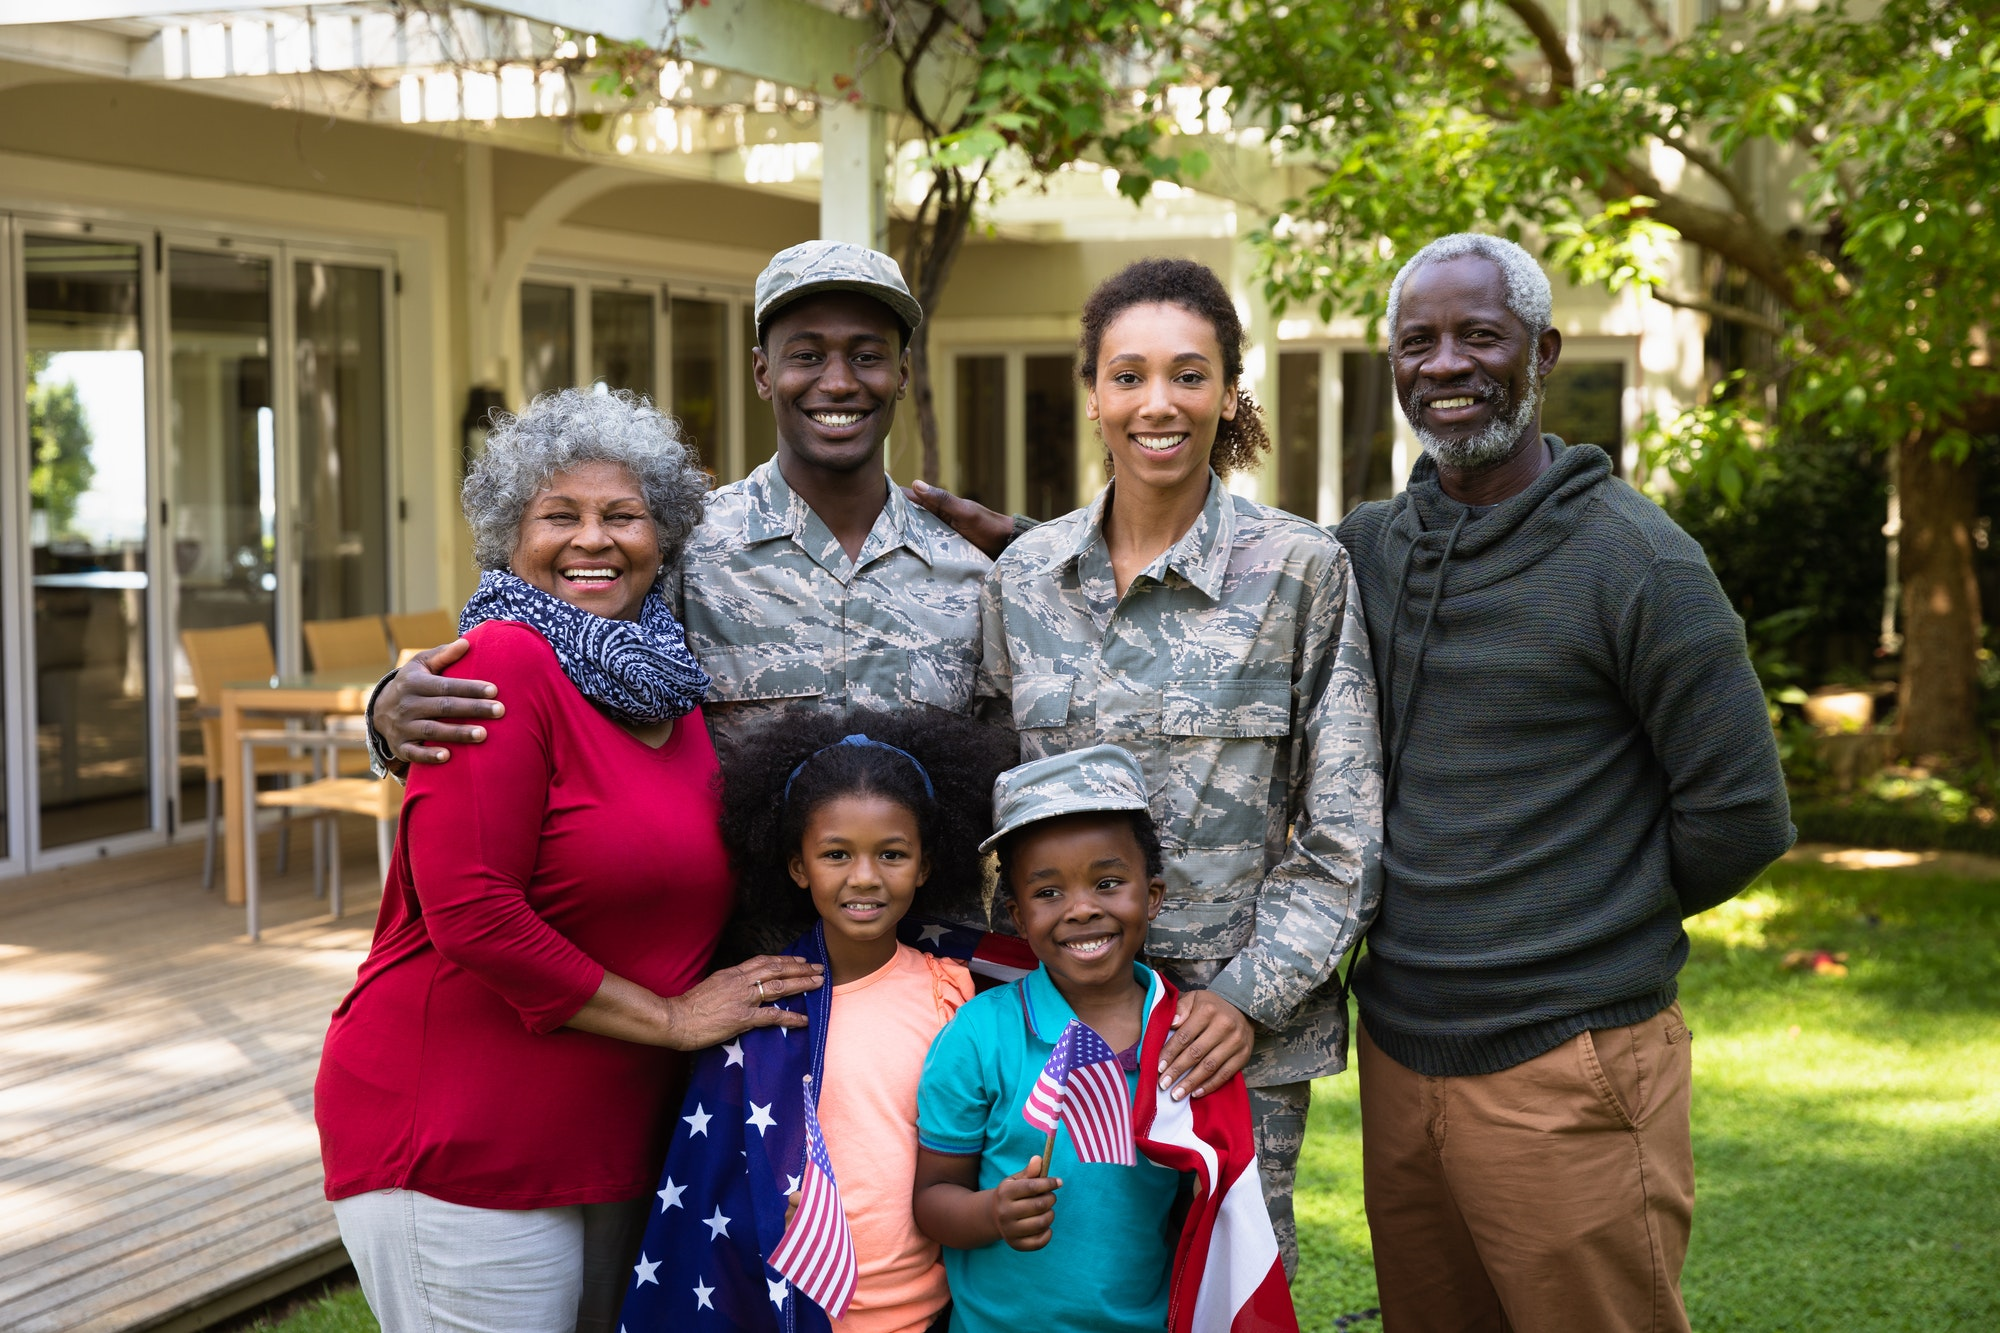 Portrait of soldier with family